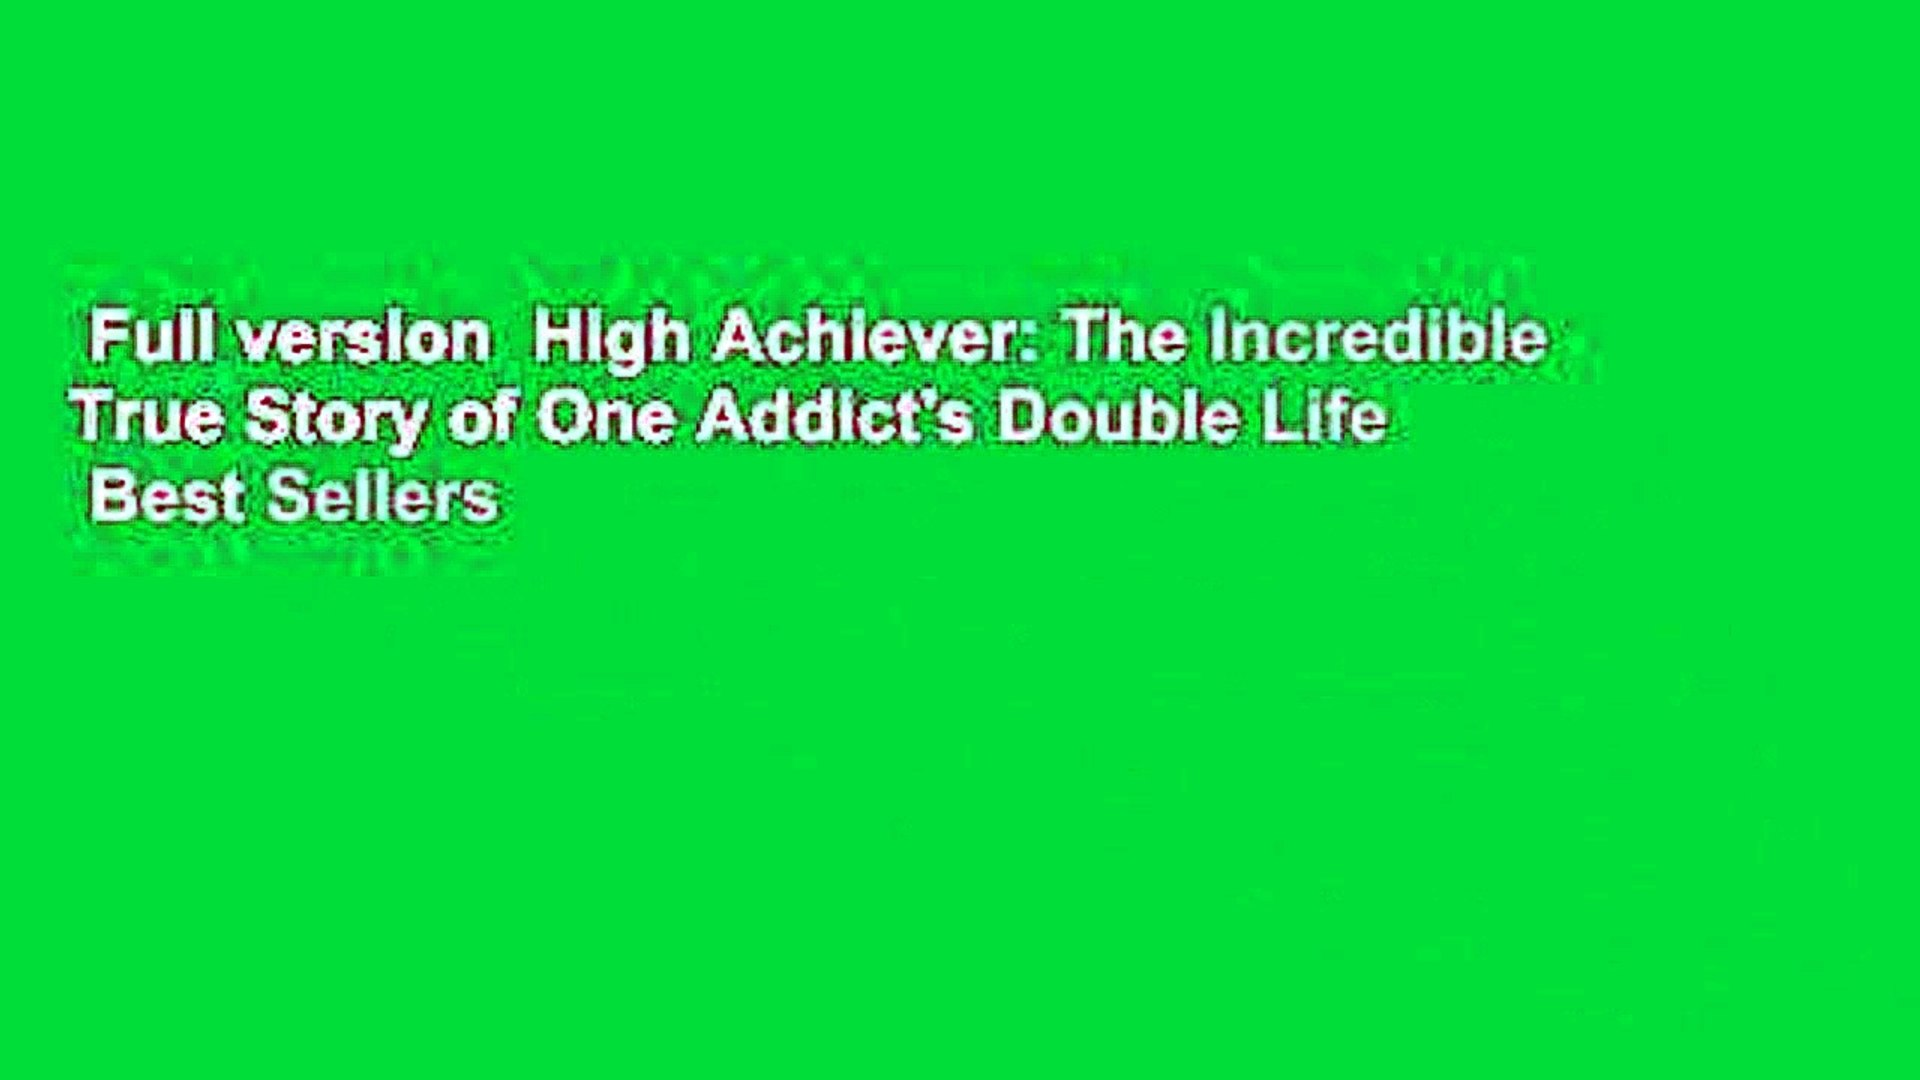 Full Version High Achiever The Incredible True Story Of One